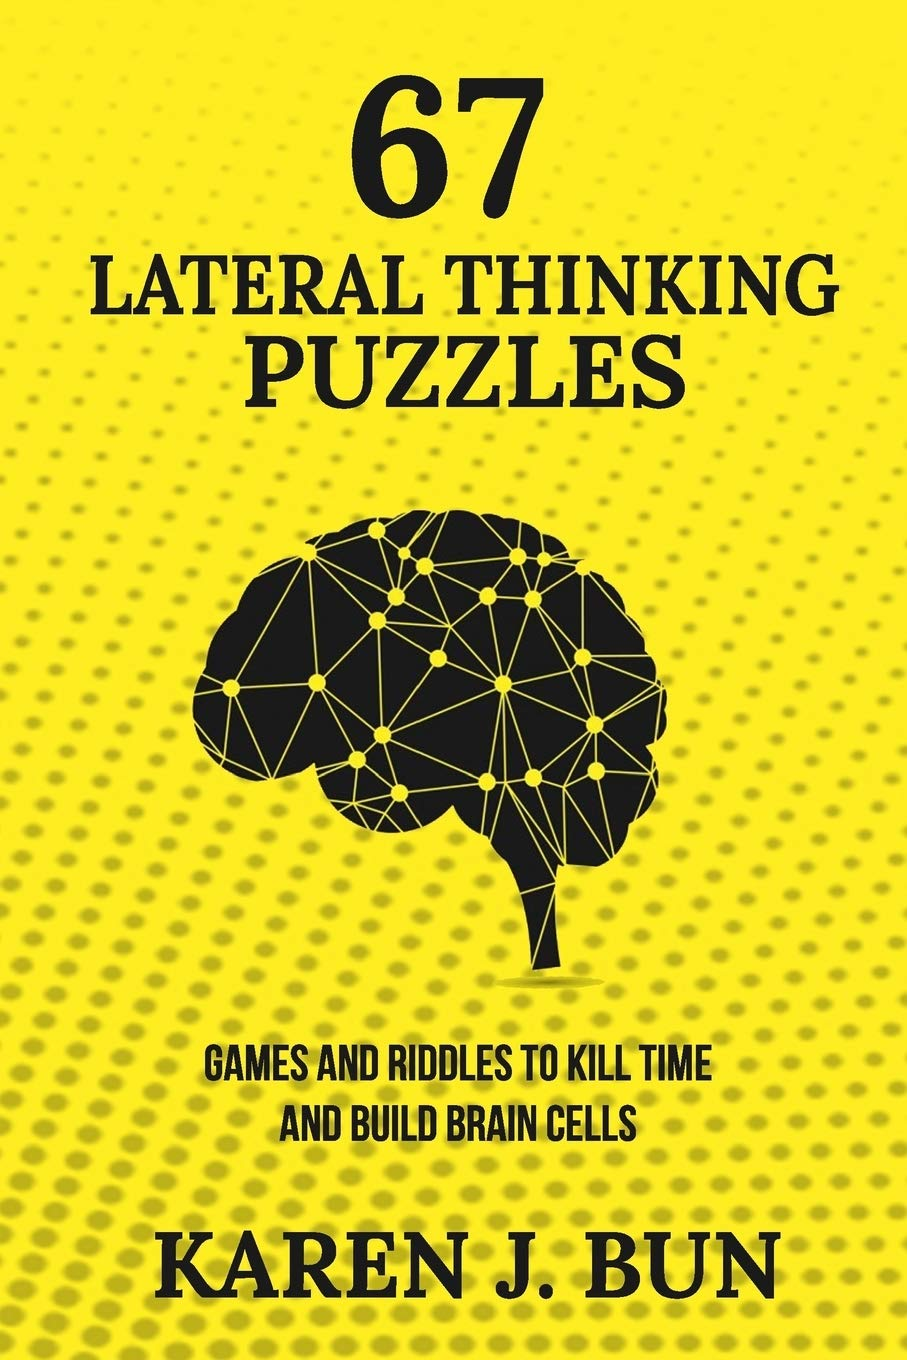 Amazon Com 67 Lateral Thinking Puzzles Games And Riddles To Kill Time And Build Brain Cells 9781790782130 Bun Karen J Books